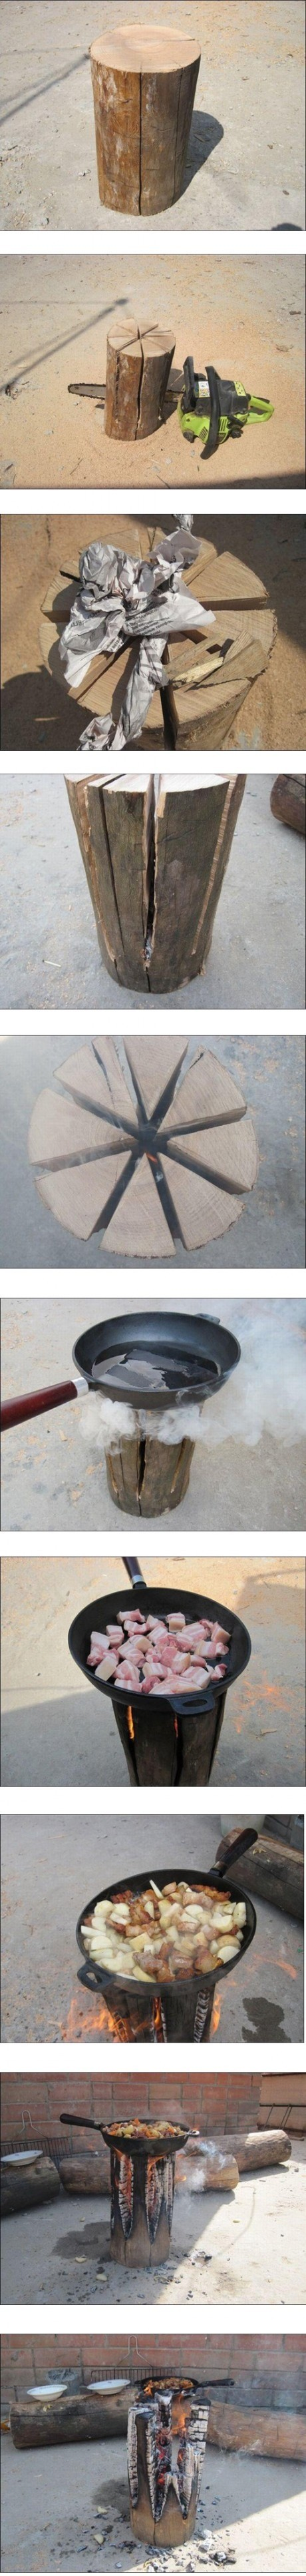 Cooking in hight level